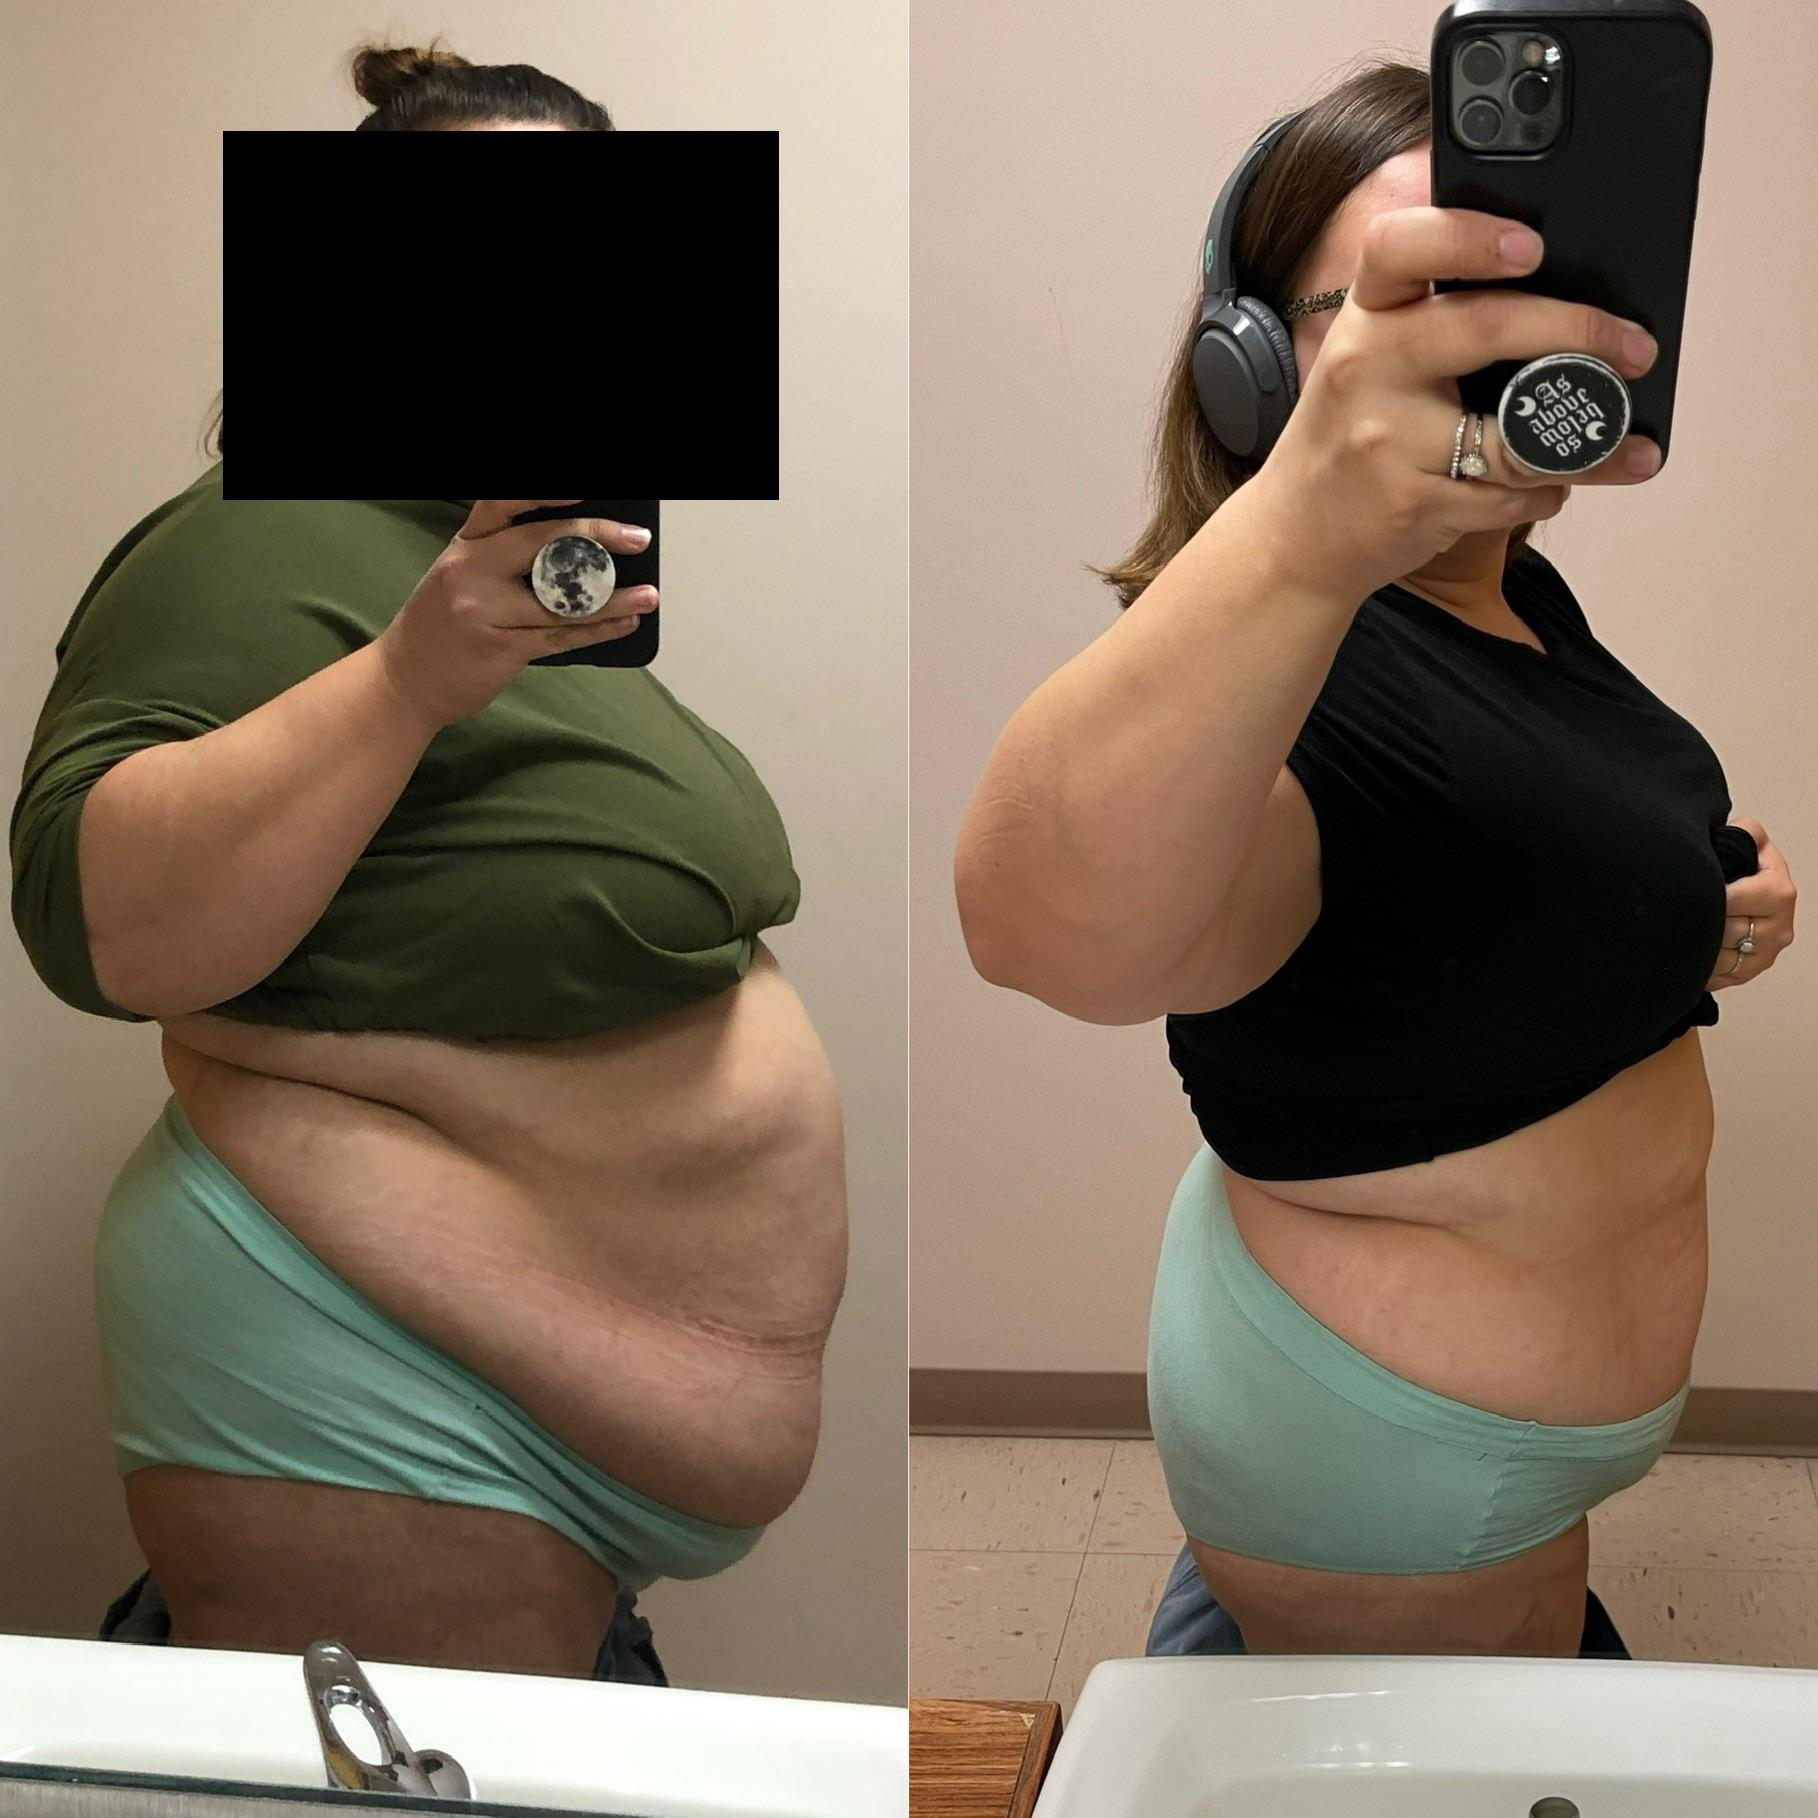 5 feet 3 Female 60 lbs Fat Loss Before and After 270 lbs to 210 lbs